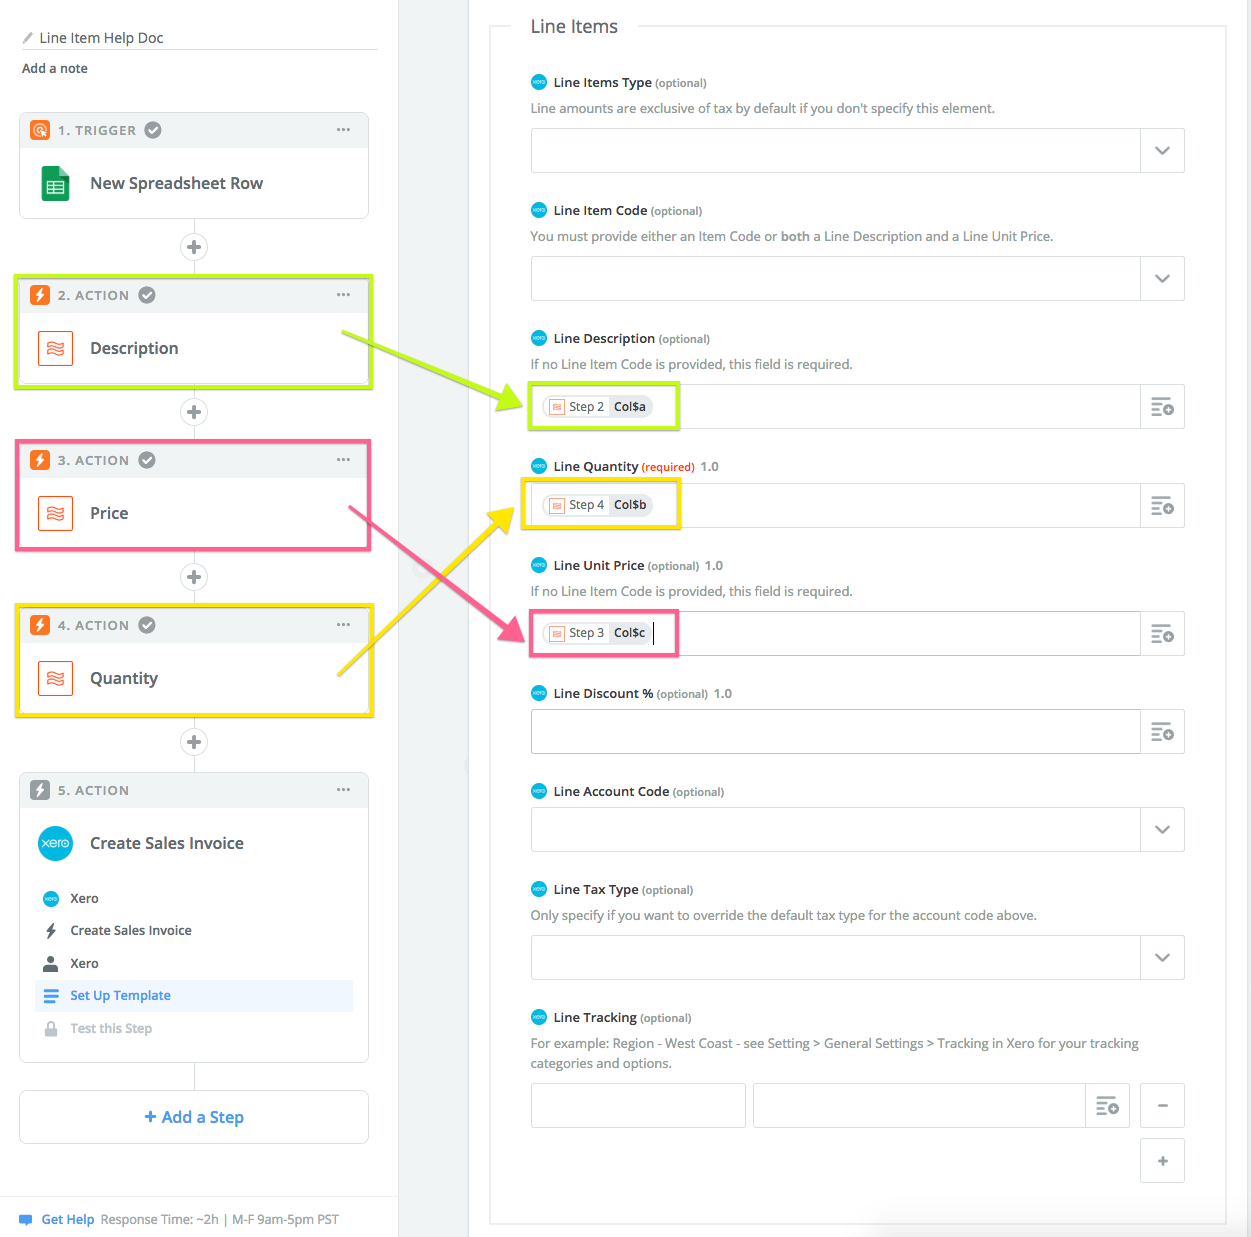 Xero step showing how the newly created line items come into play